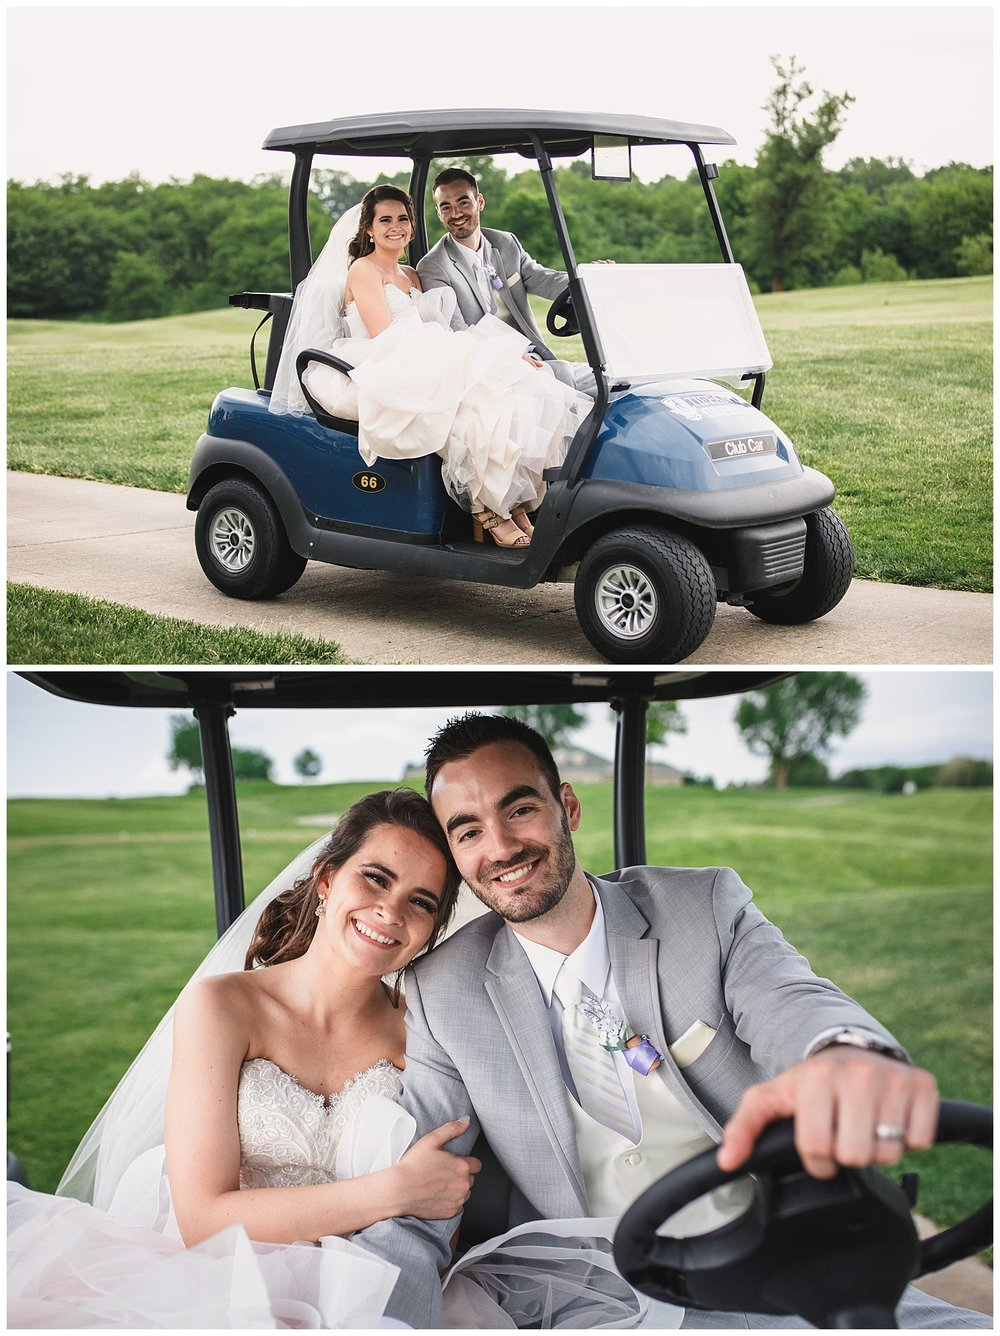 Tiffany_Greens_Golf_Club_Kansas_City_Wedding_Nikki_David_Spring_Wedding_Kelsey_Diane_Photography_0056.jpg